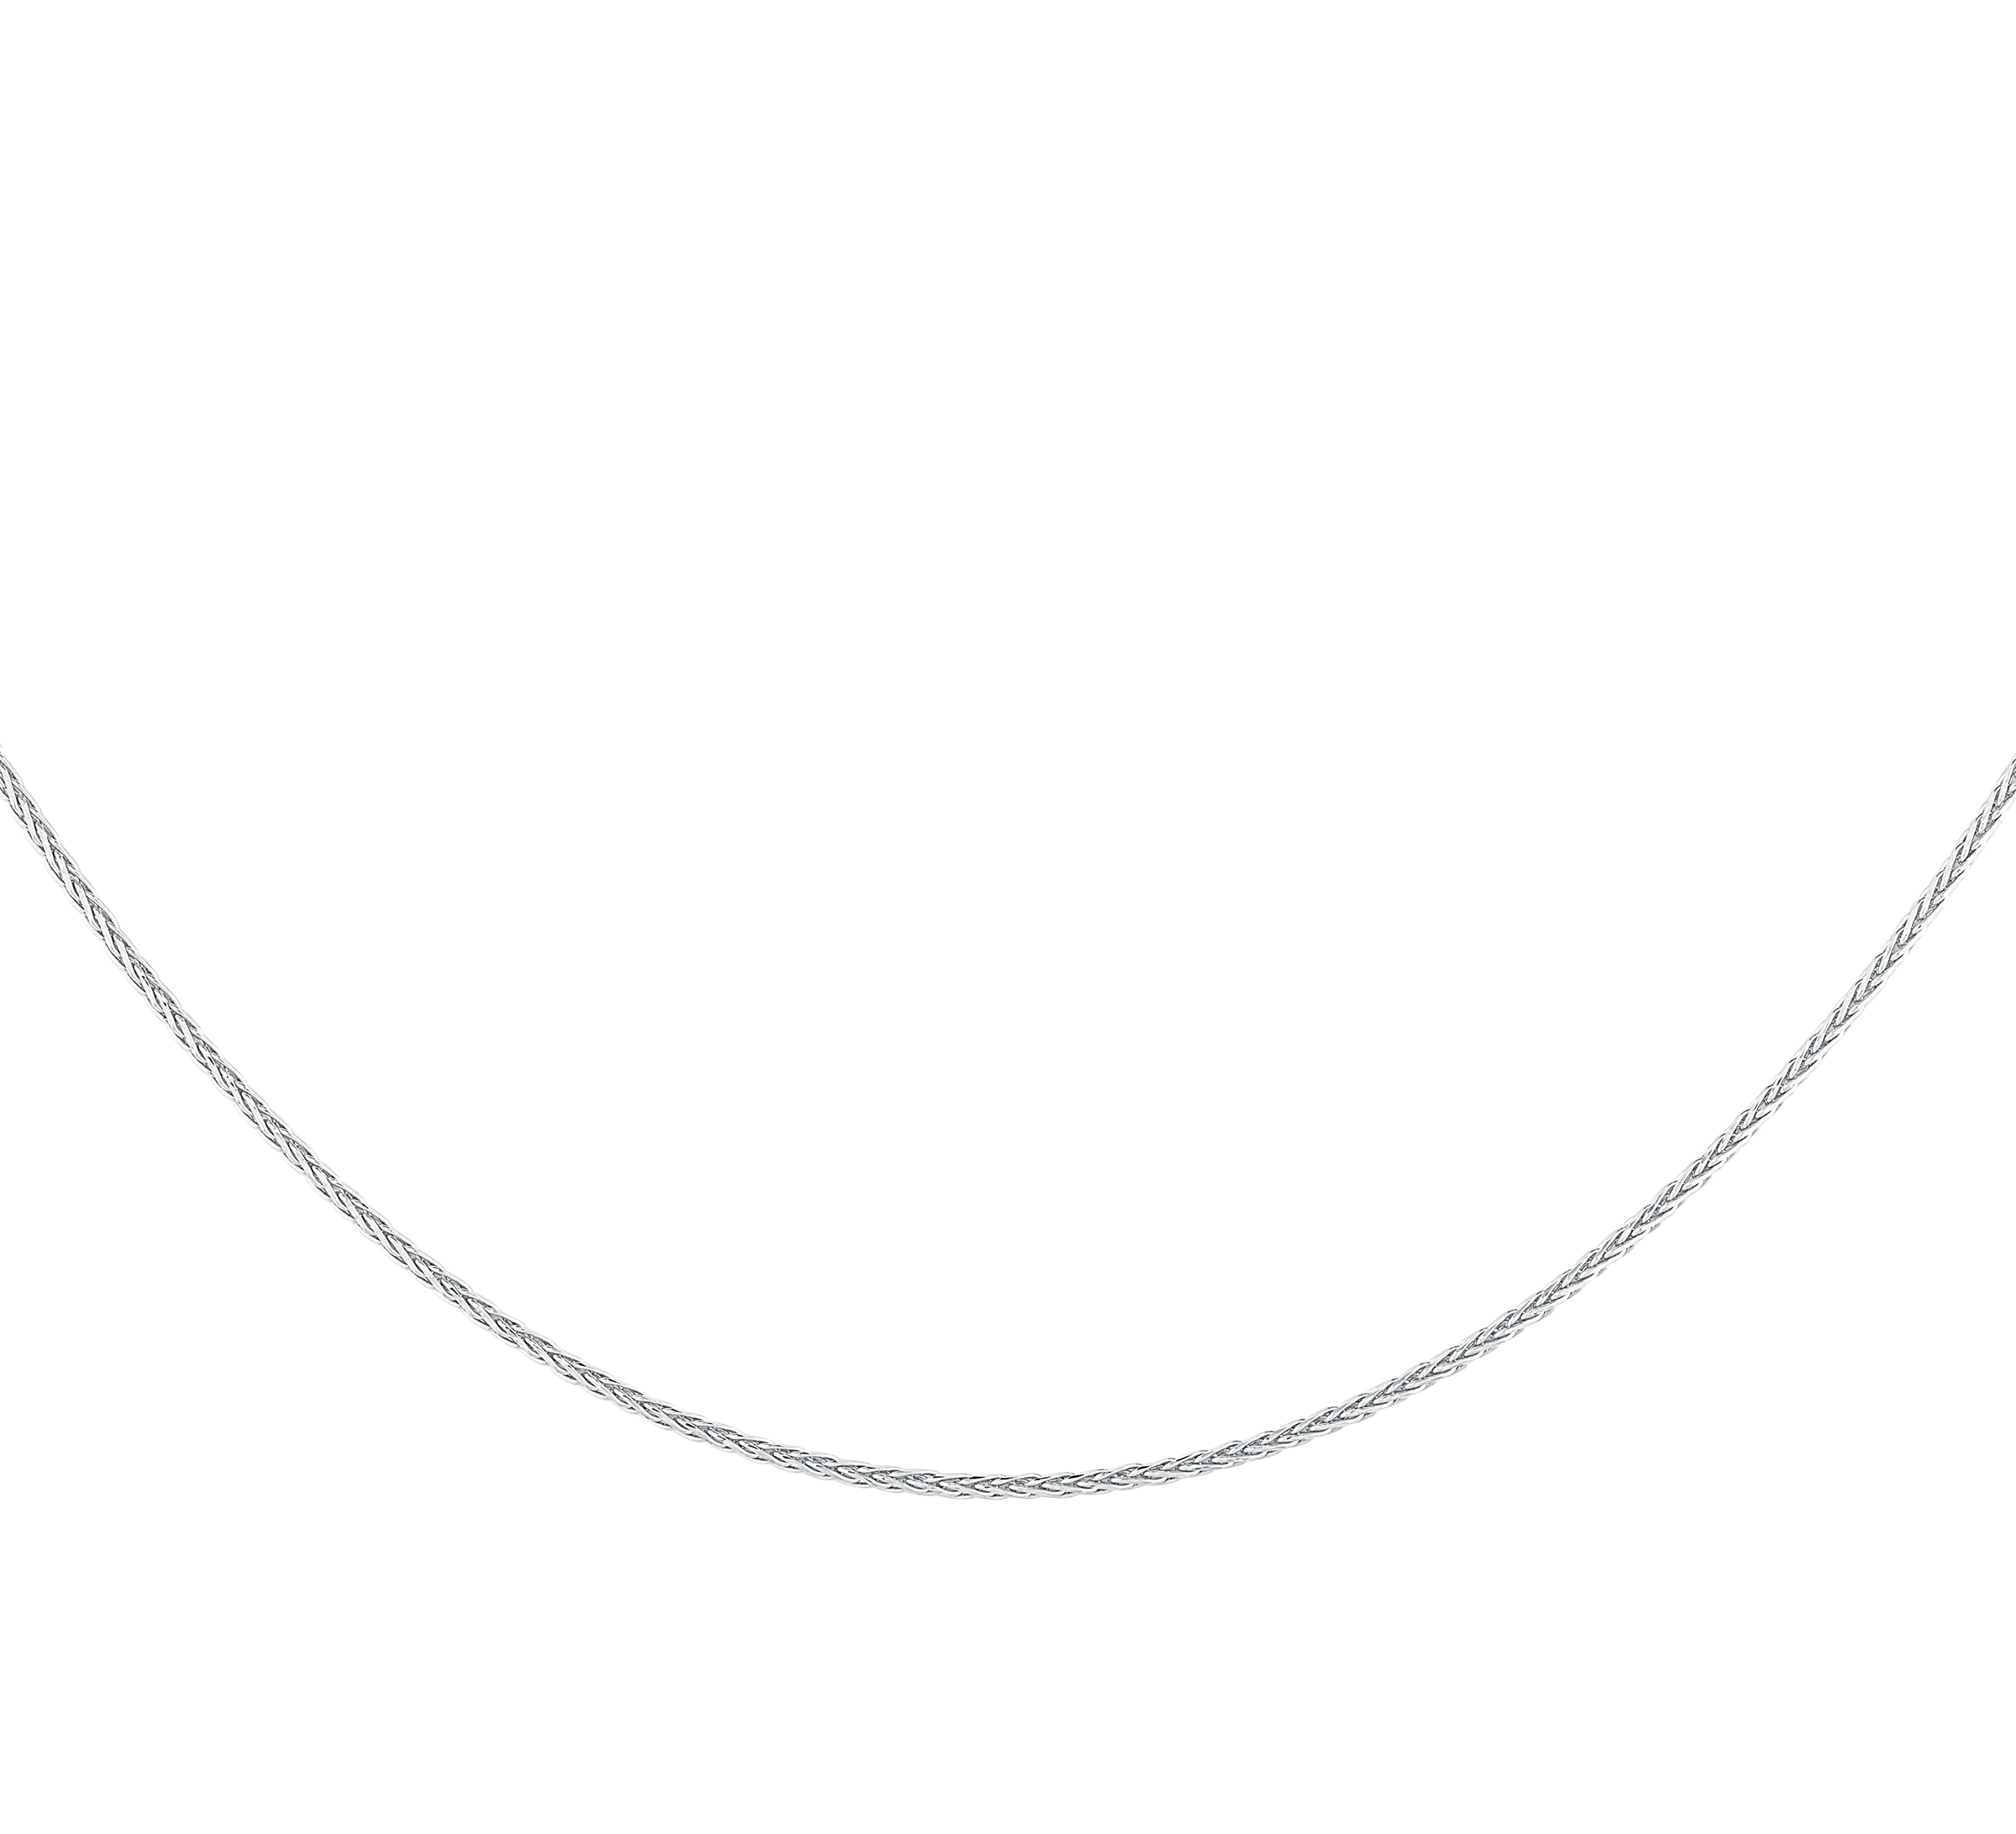 Chain 20'' - Sterling silver with rhodium plated finish